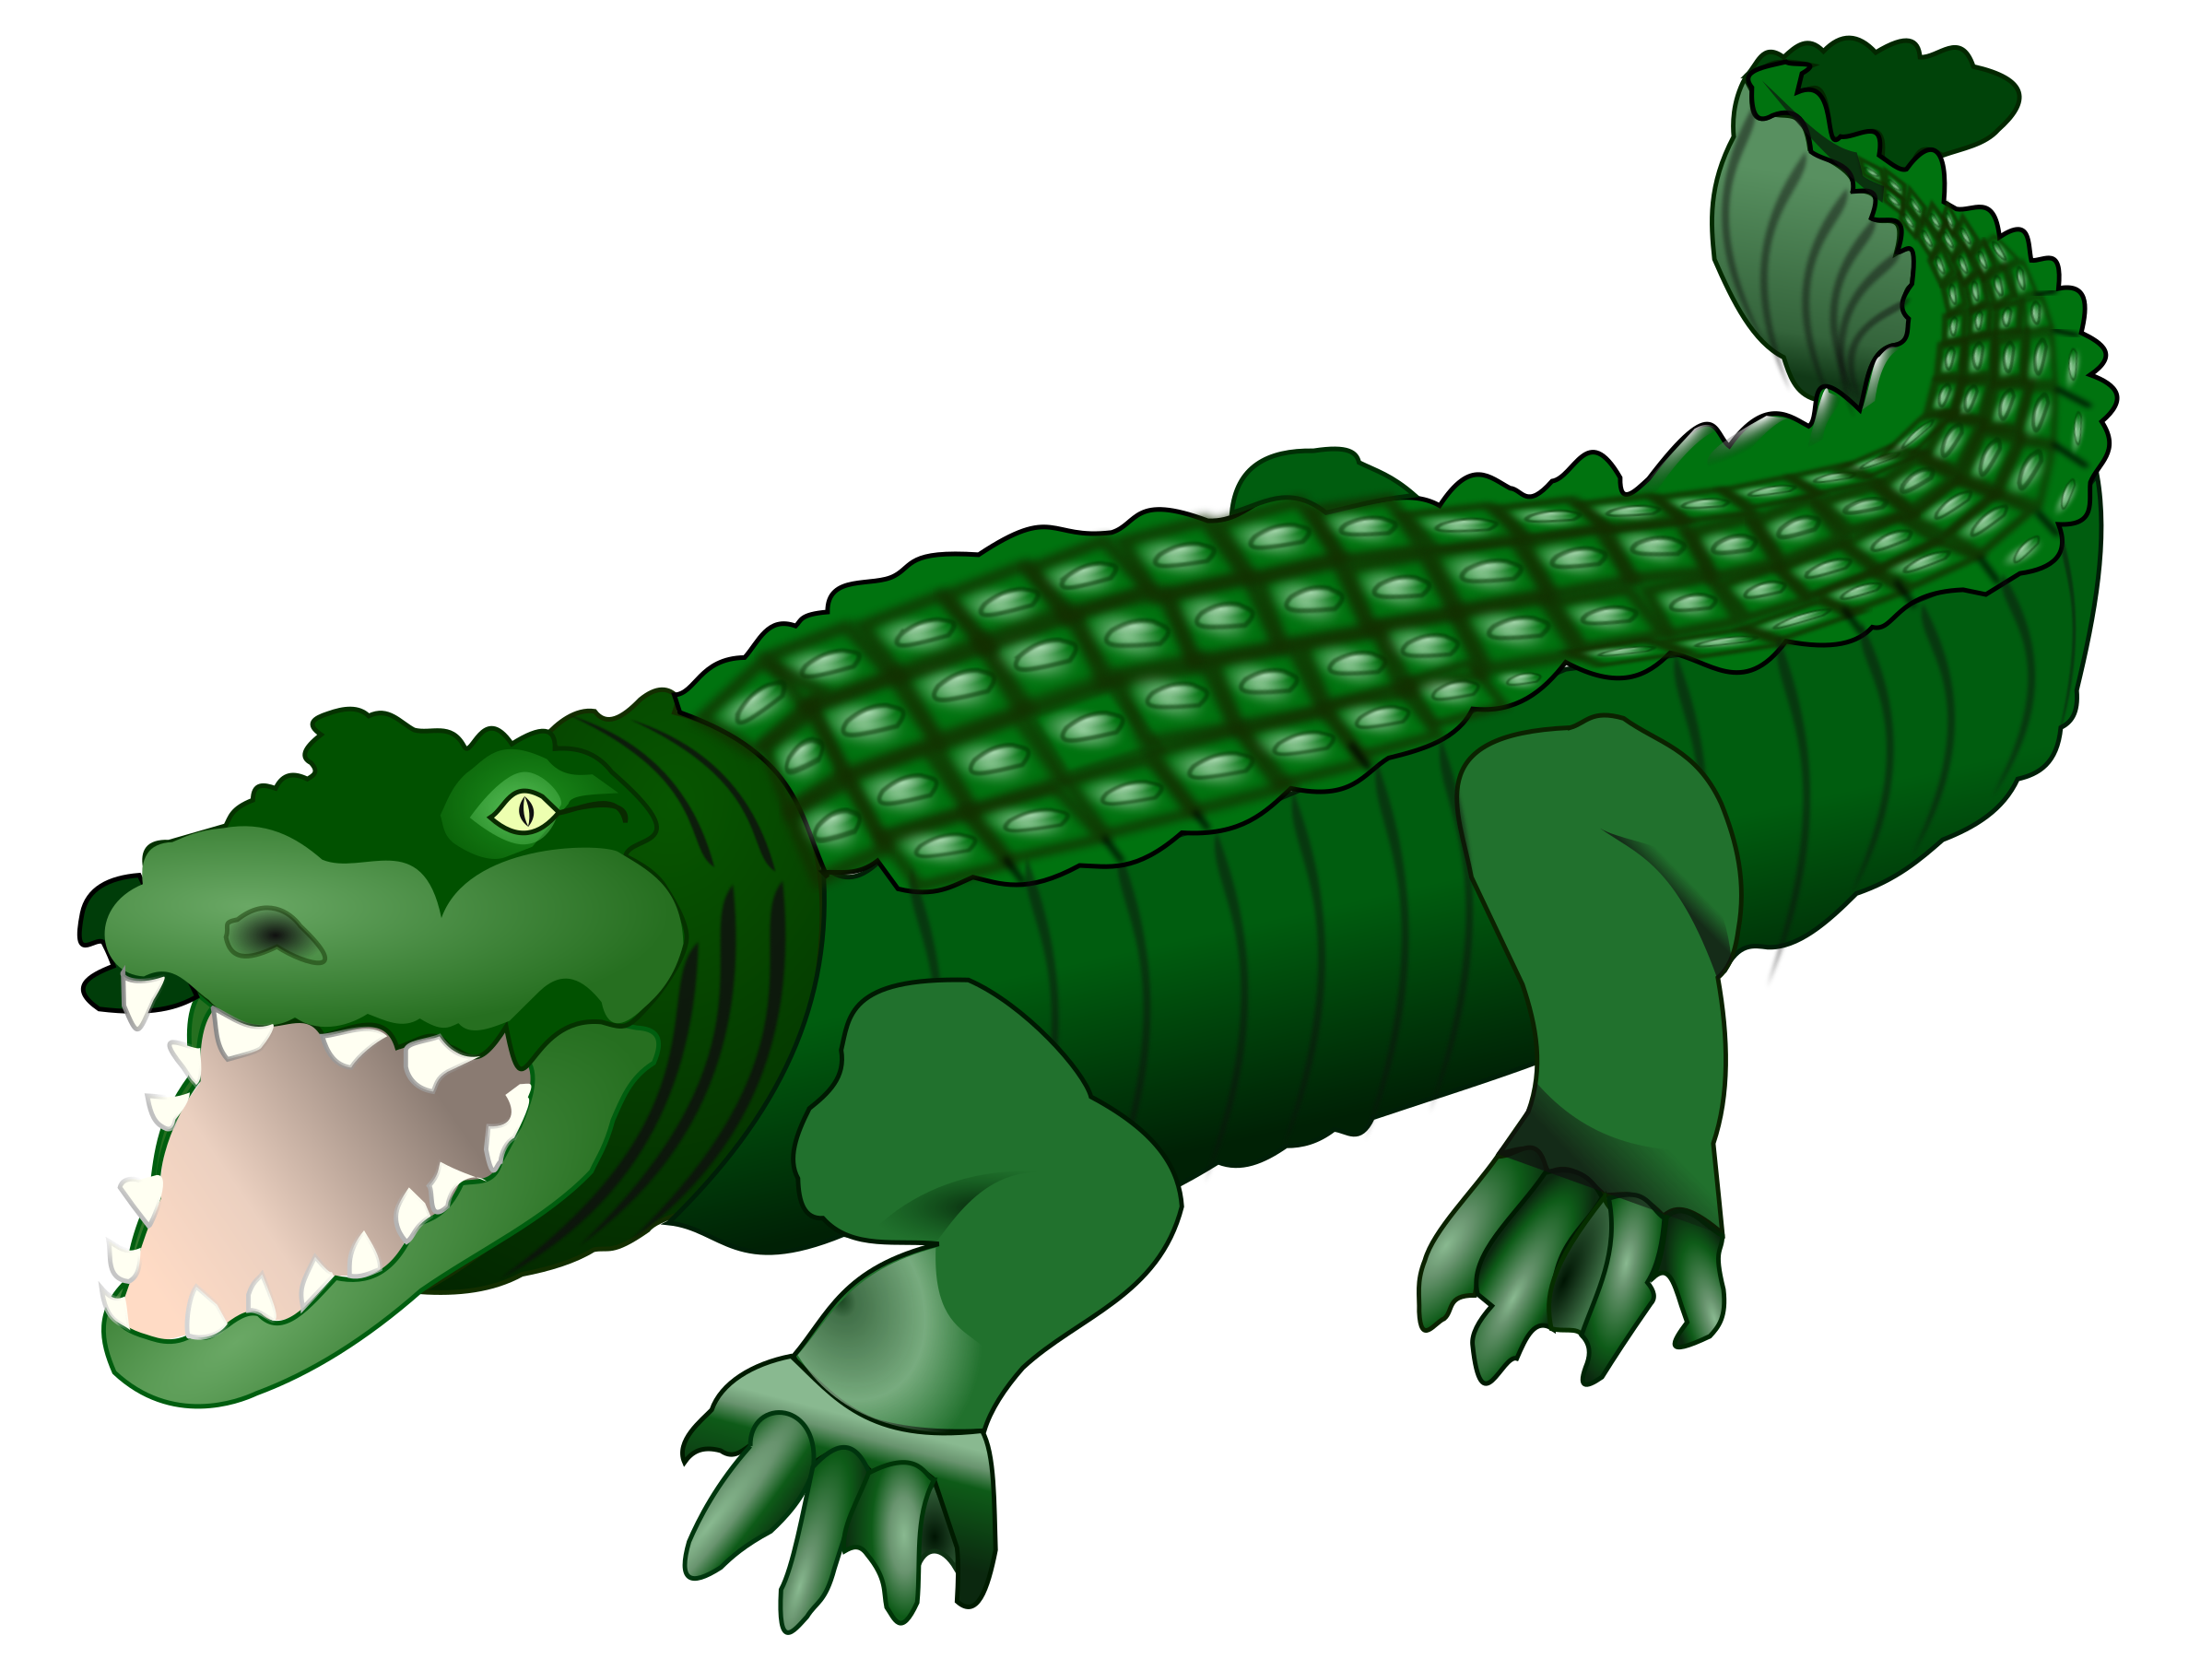 royalty free download Crocodile clipart. Green free on dumielauxepices.